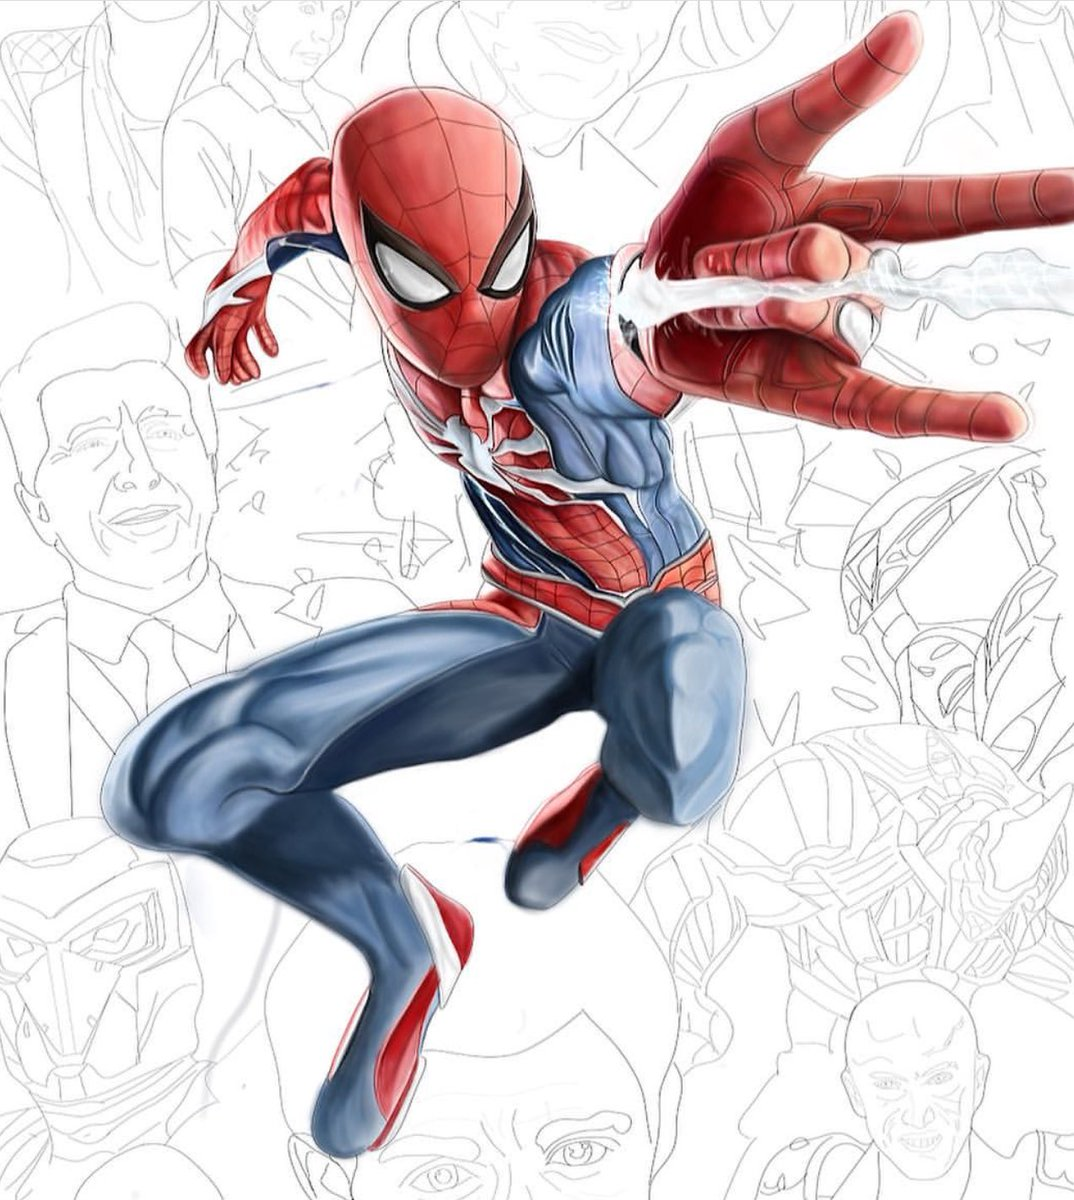 Hey Guys Working On A New Poster! My Friend Helped Out With Some Of The Colouring! I'll Give Some Prints Away When Done! #SpiderManPS4 @Joseph_Witty @EvanFilarca @insomniacgames @IamAmazingLucas @BillRosemann @bryanintihar @JamesStevenson @jacinda_chew @YuriLowenthal @PlayStation <br>http://pic.twitter.com/vC9cRaMjmu